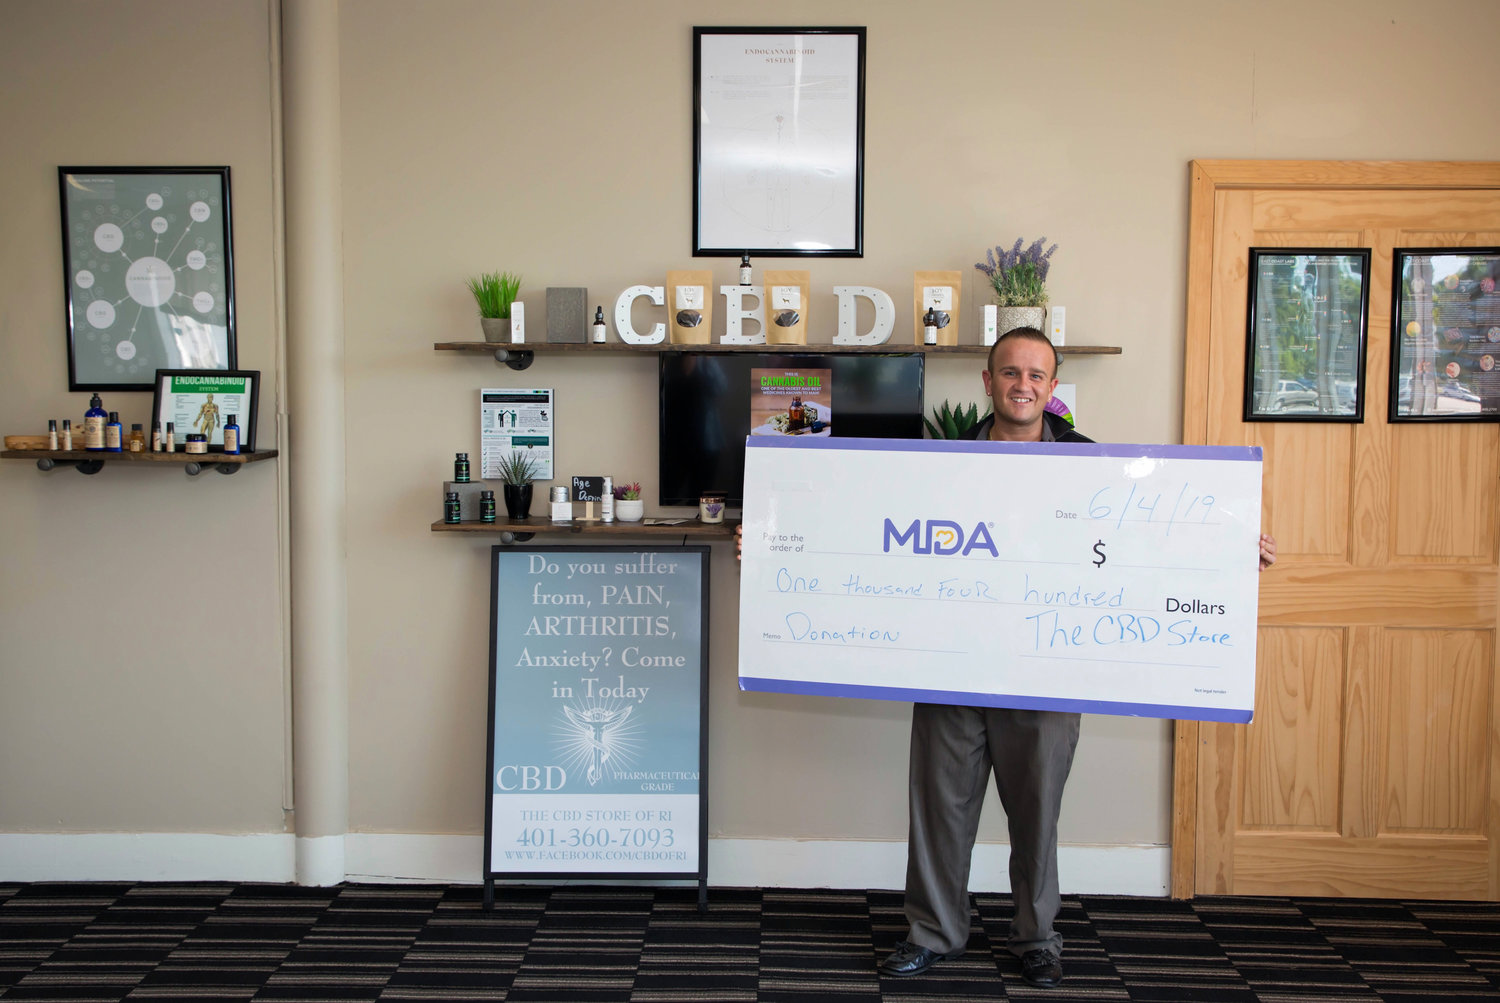 Michael was able to donate $1,400 to the muscular 